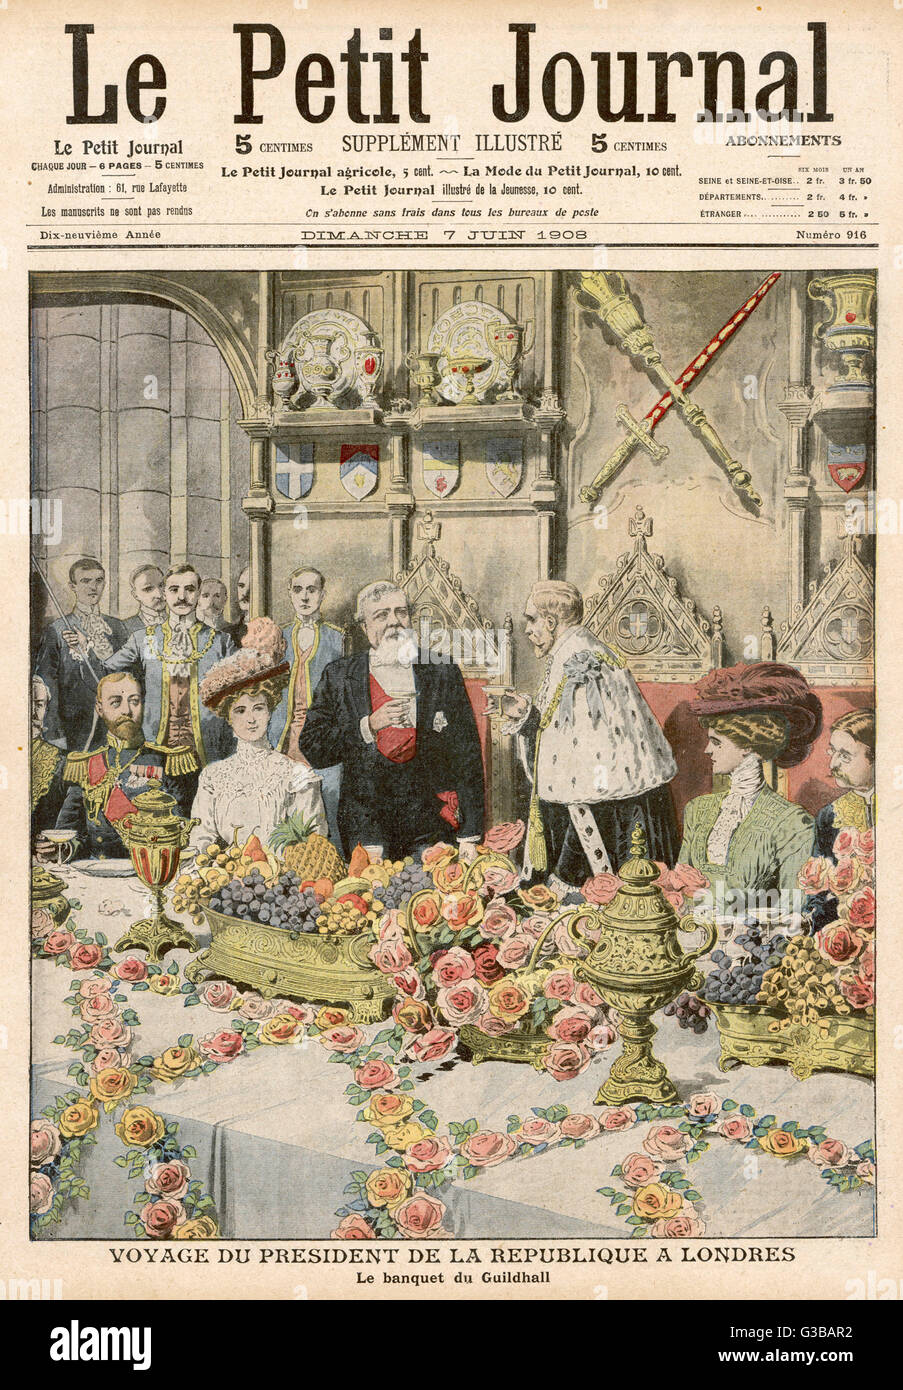 The Lord Mayor of London  invites French President  Fallieres to dine at his  Guildhall banquet.       Date: 1908 - Stock Image